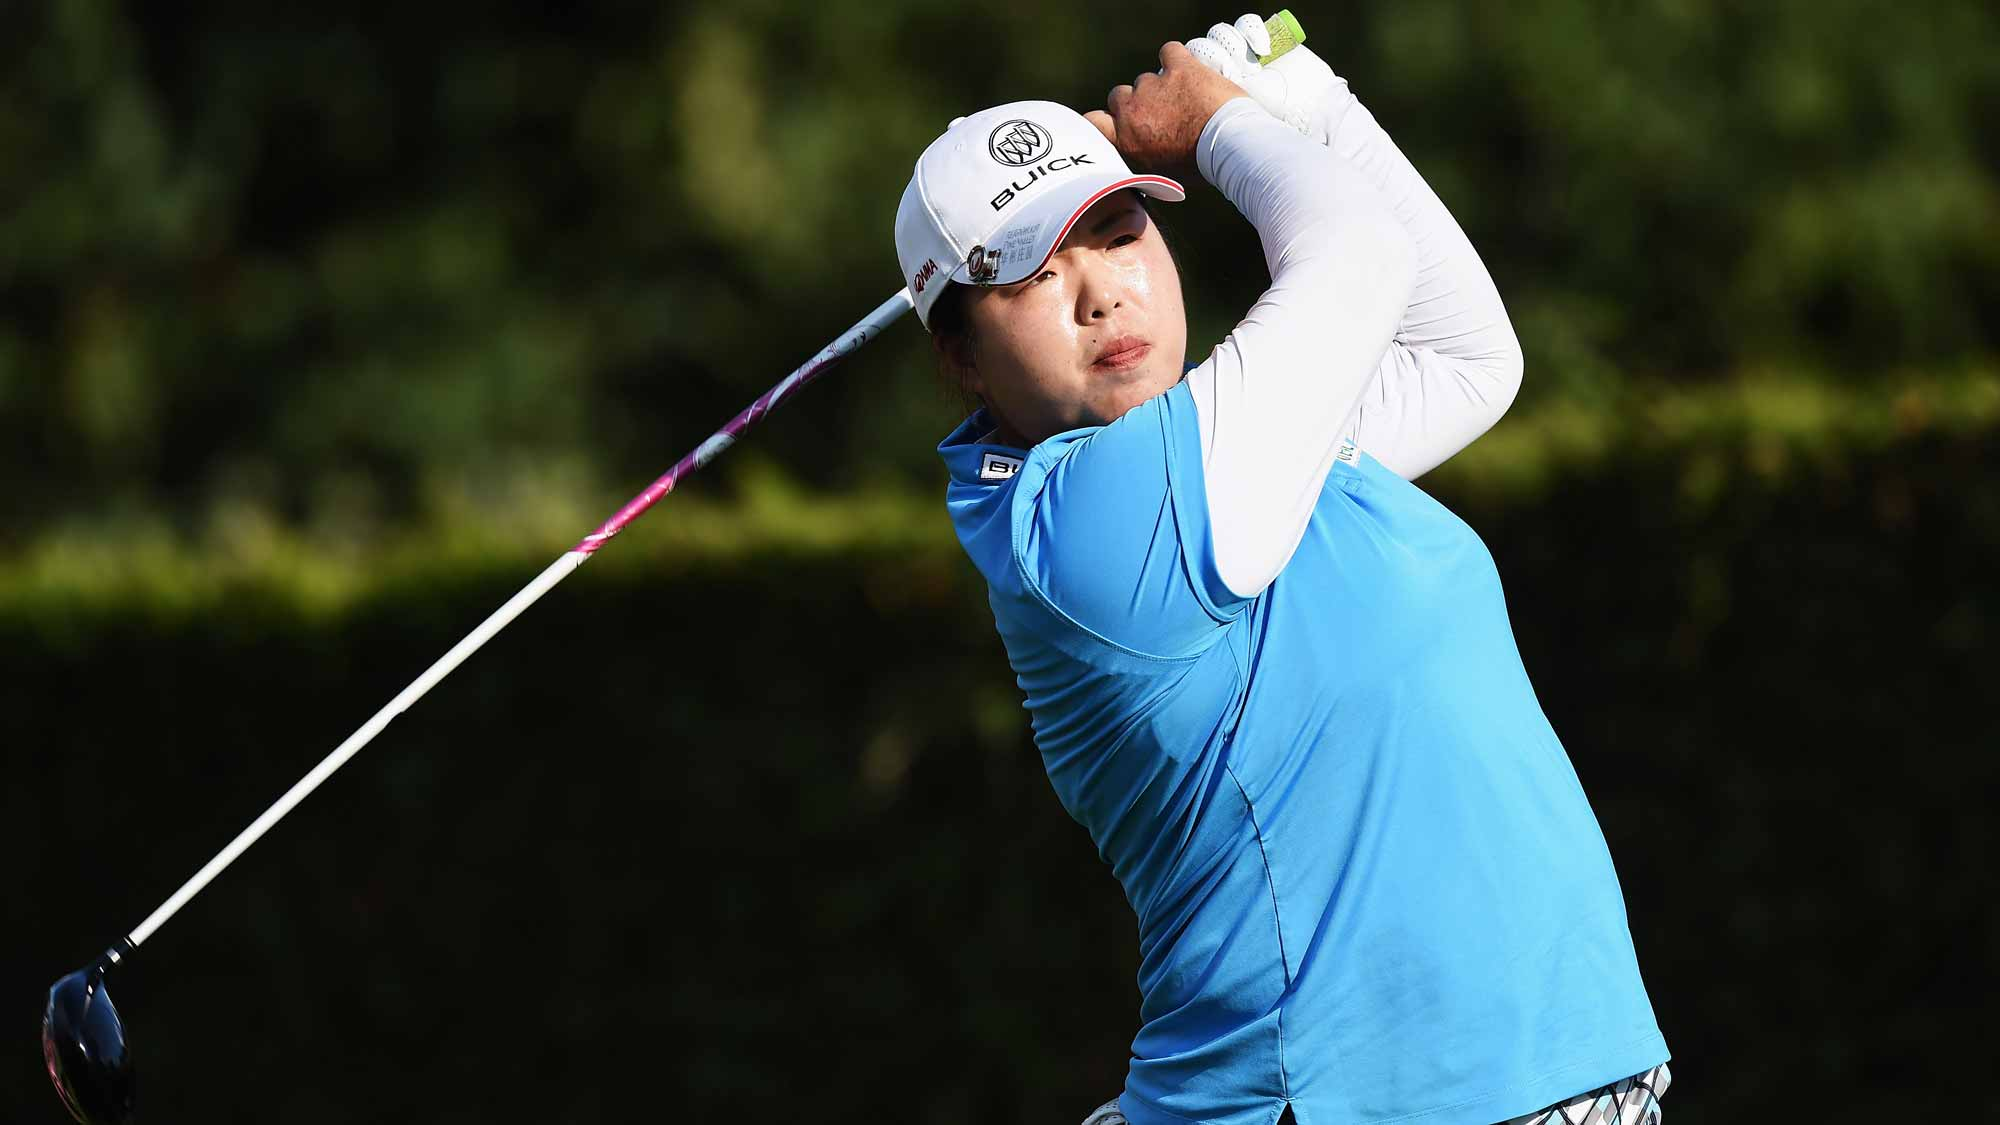 Shanshan Feng during the first round of the Evian Championship